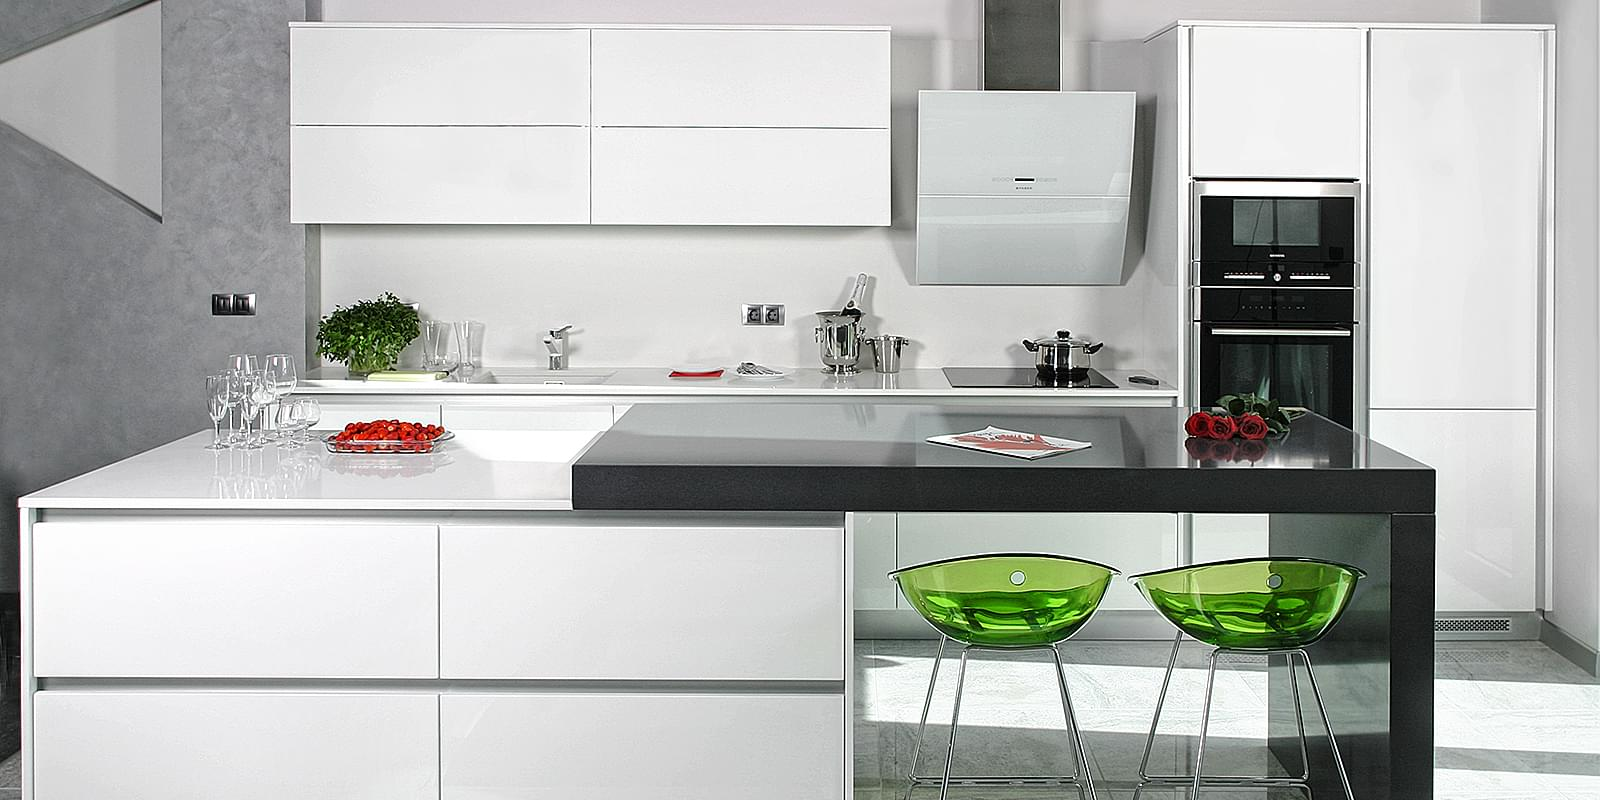 Kitchen Model Dialog Kitchens  Liviana